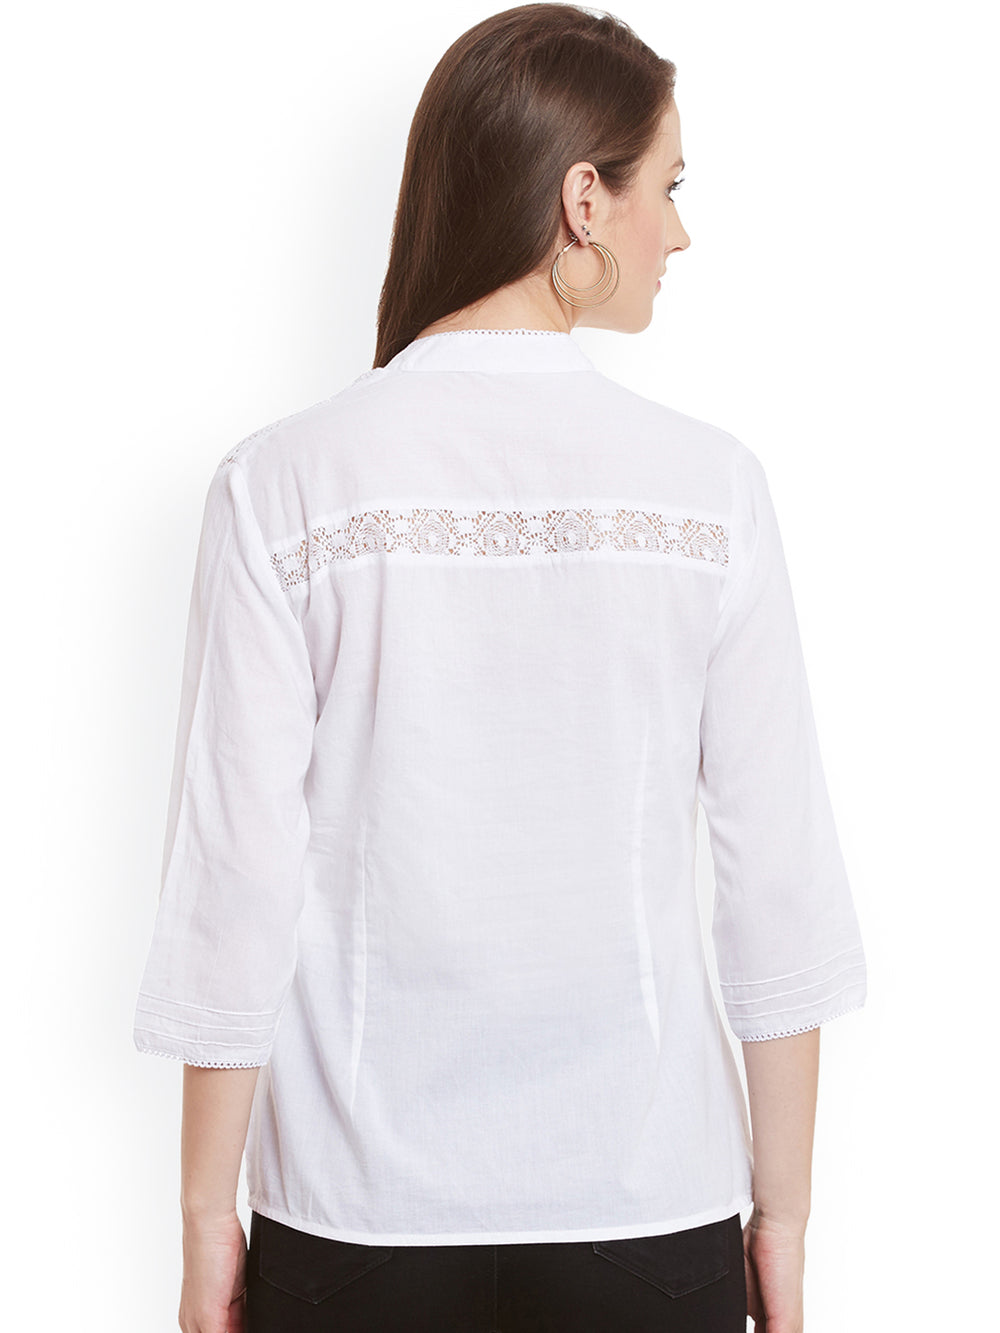 eyelet Women White Regular Solid Casual Shirt